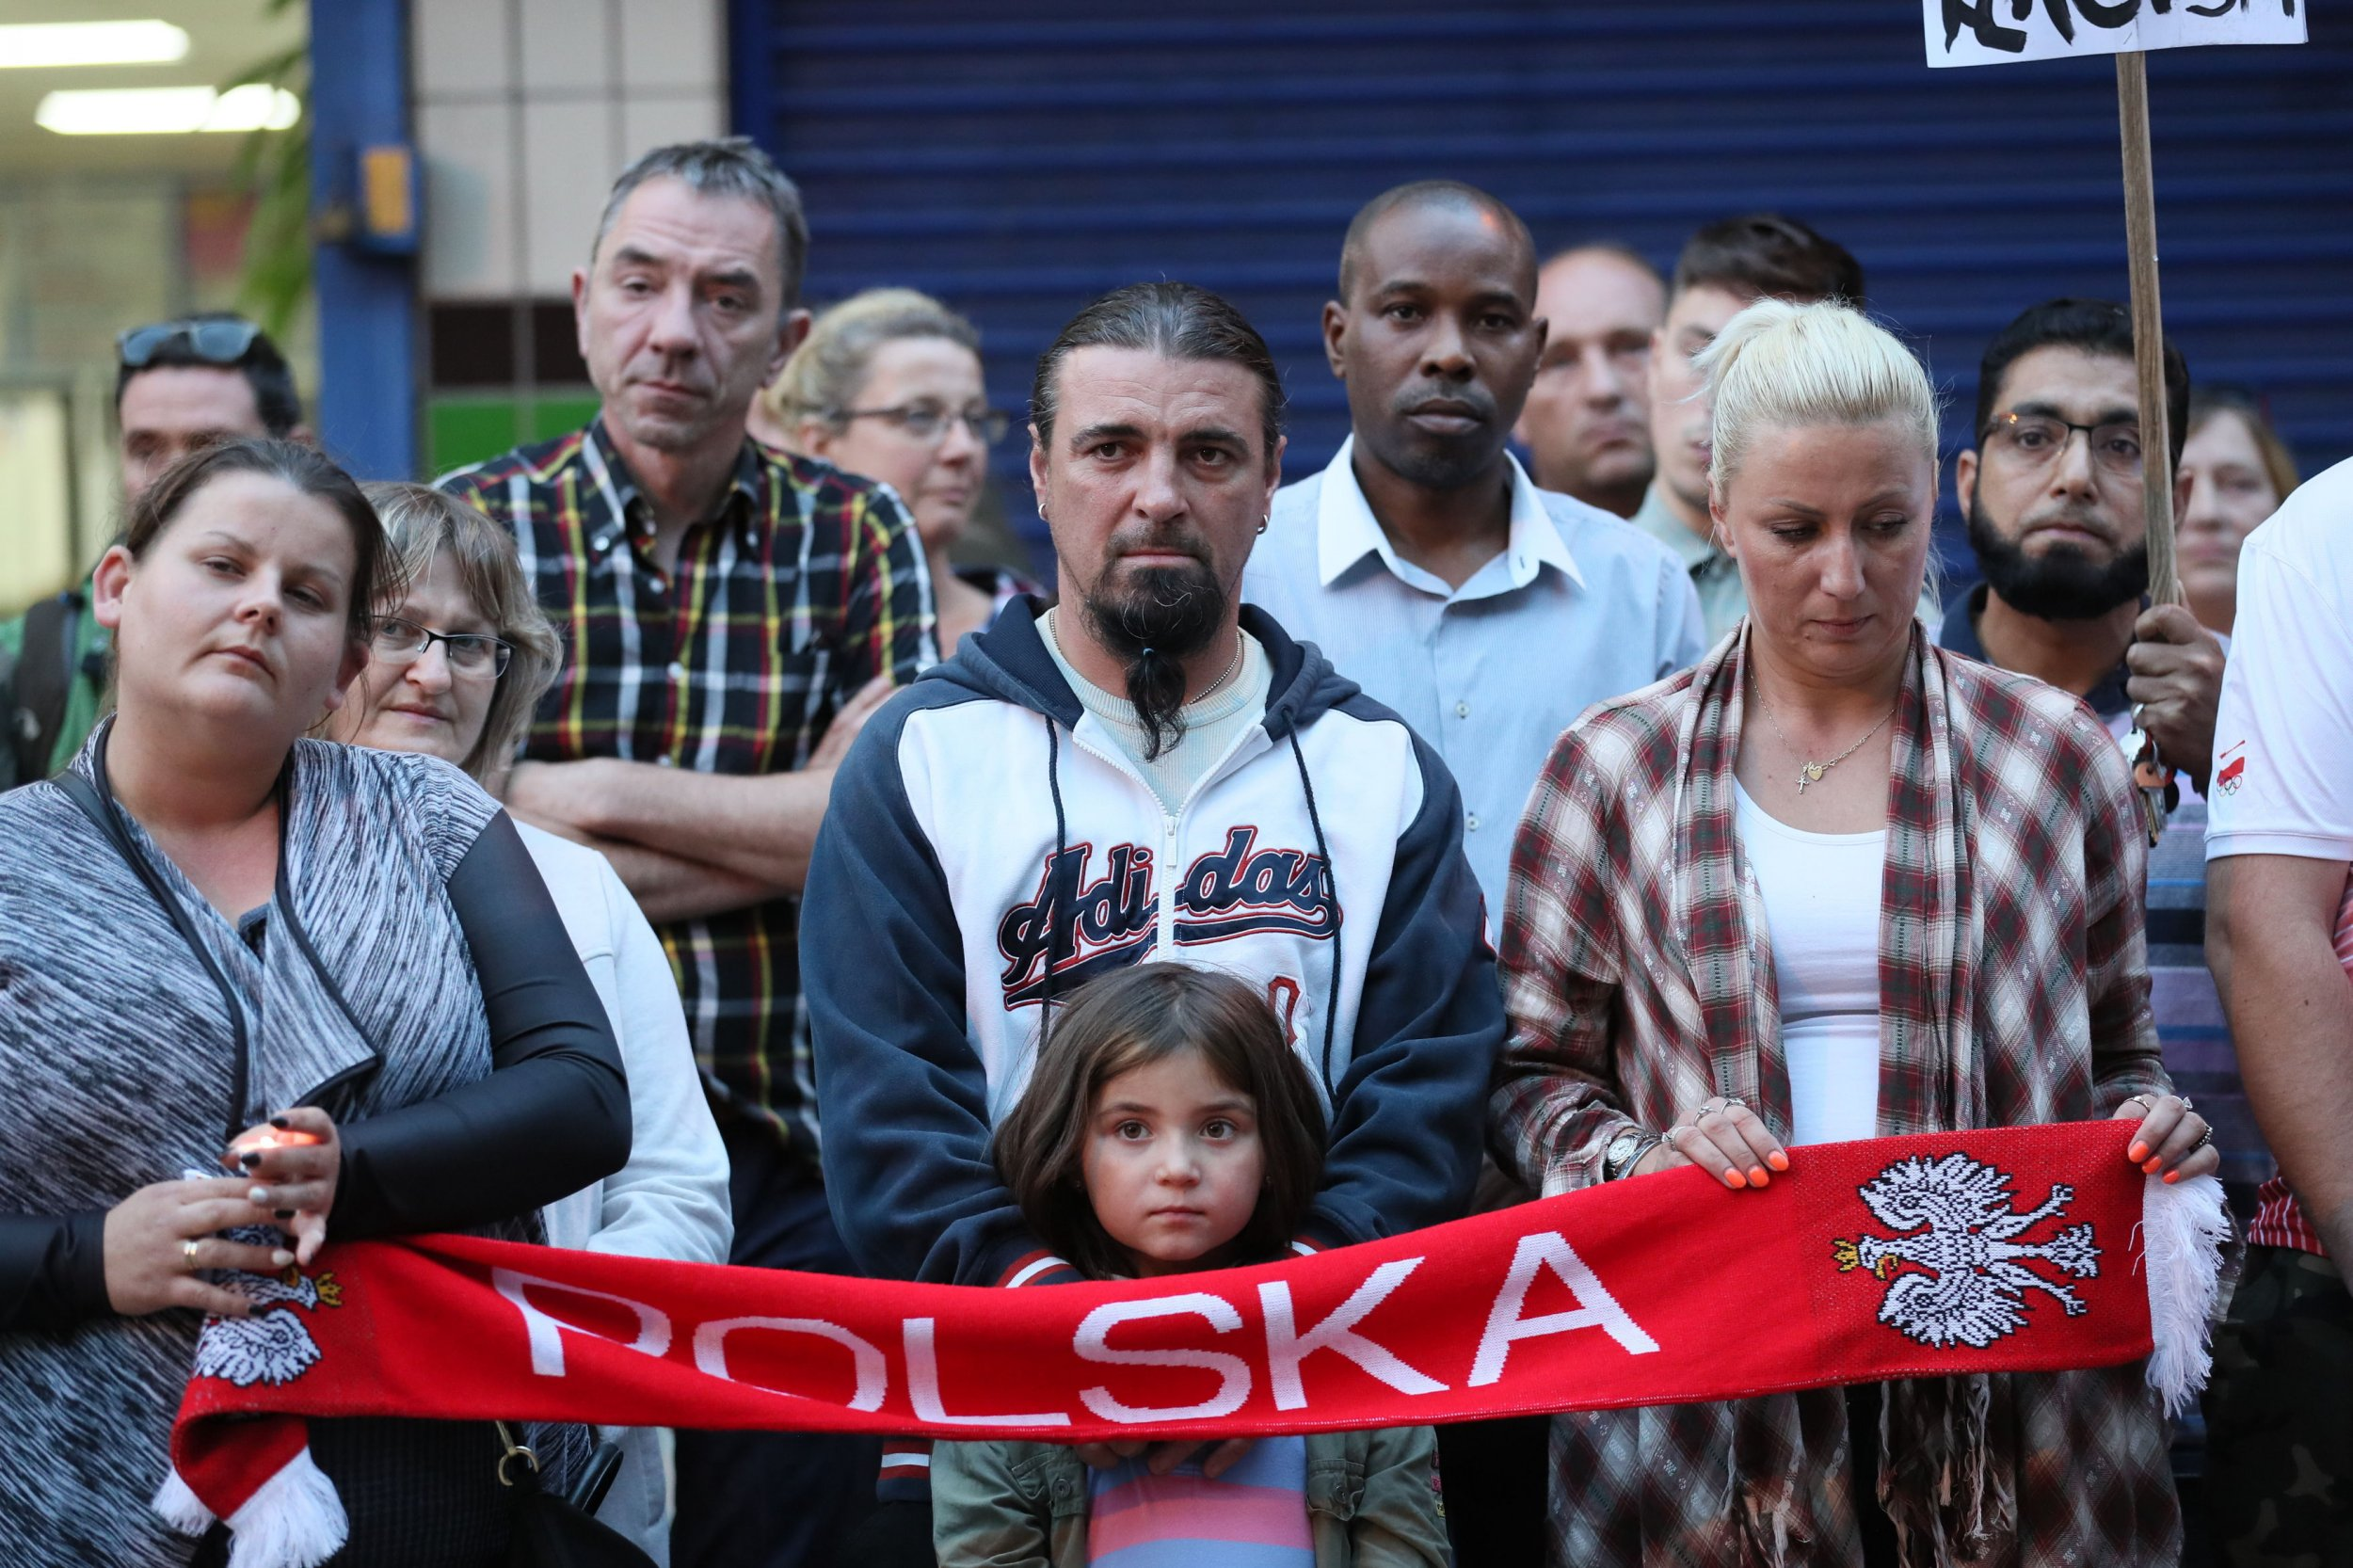 polish people in uk There are also few more things that usually people in uk are not aware, many of  polish immigrants here are just people who are incredibly.